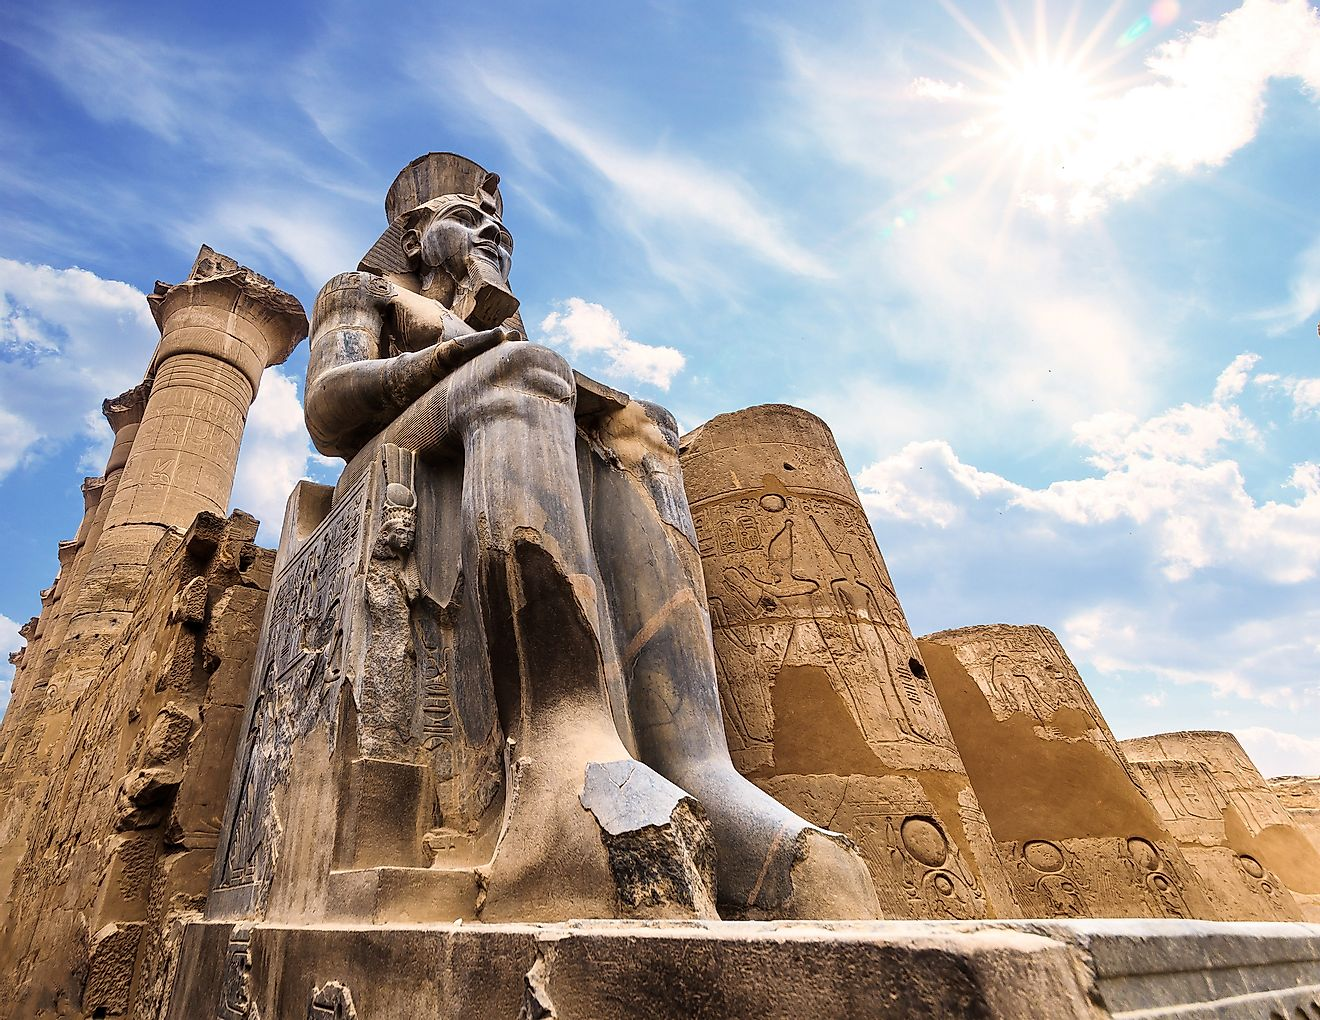 The huge statue of Ramesses II in Luxor Temple, Egypt. Image credit: Graficam Ahmed Saeed/Shutterstock.com